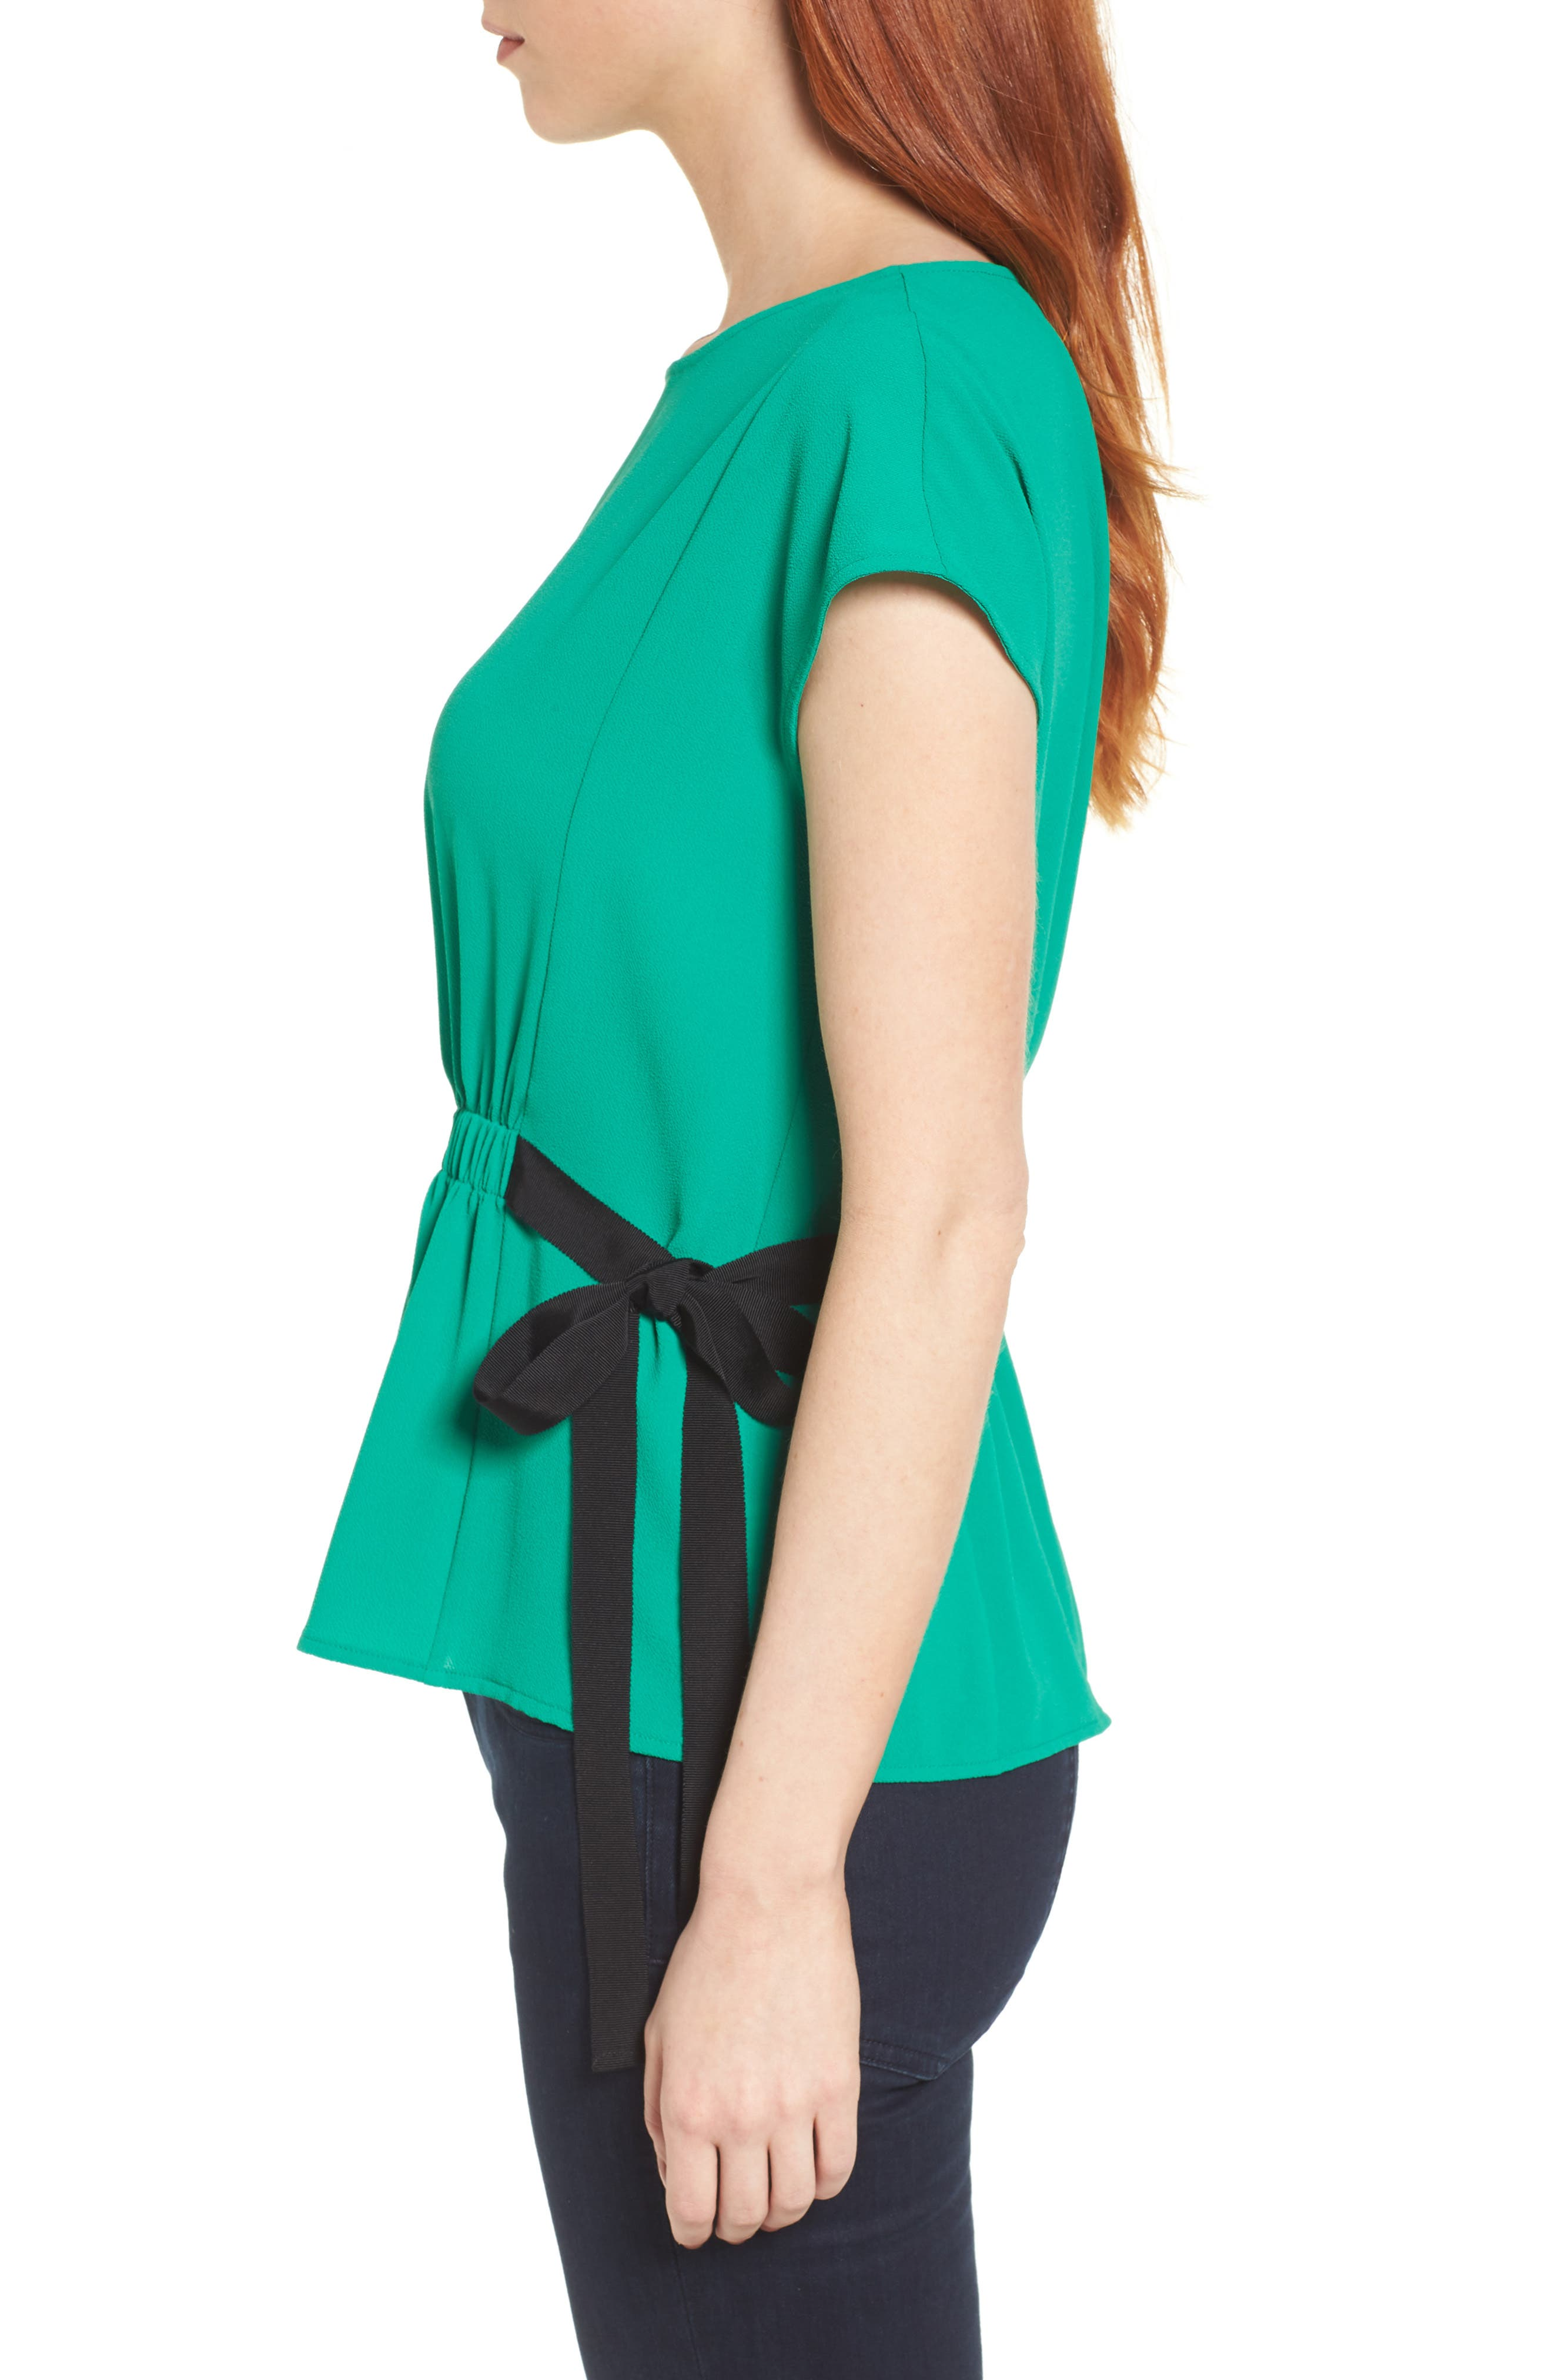 Gathered Waist Side Tie Top,                             Alternate thumbnail 3, color,                             Kelly Green With Black Tie